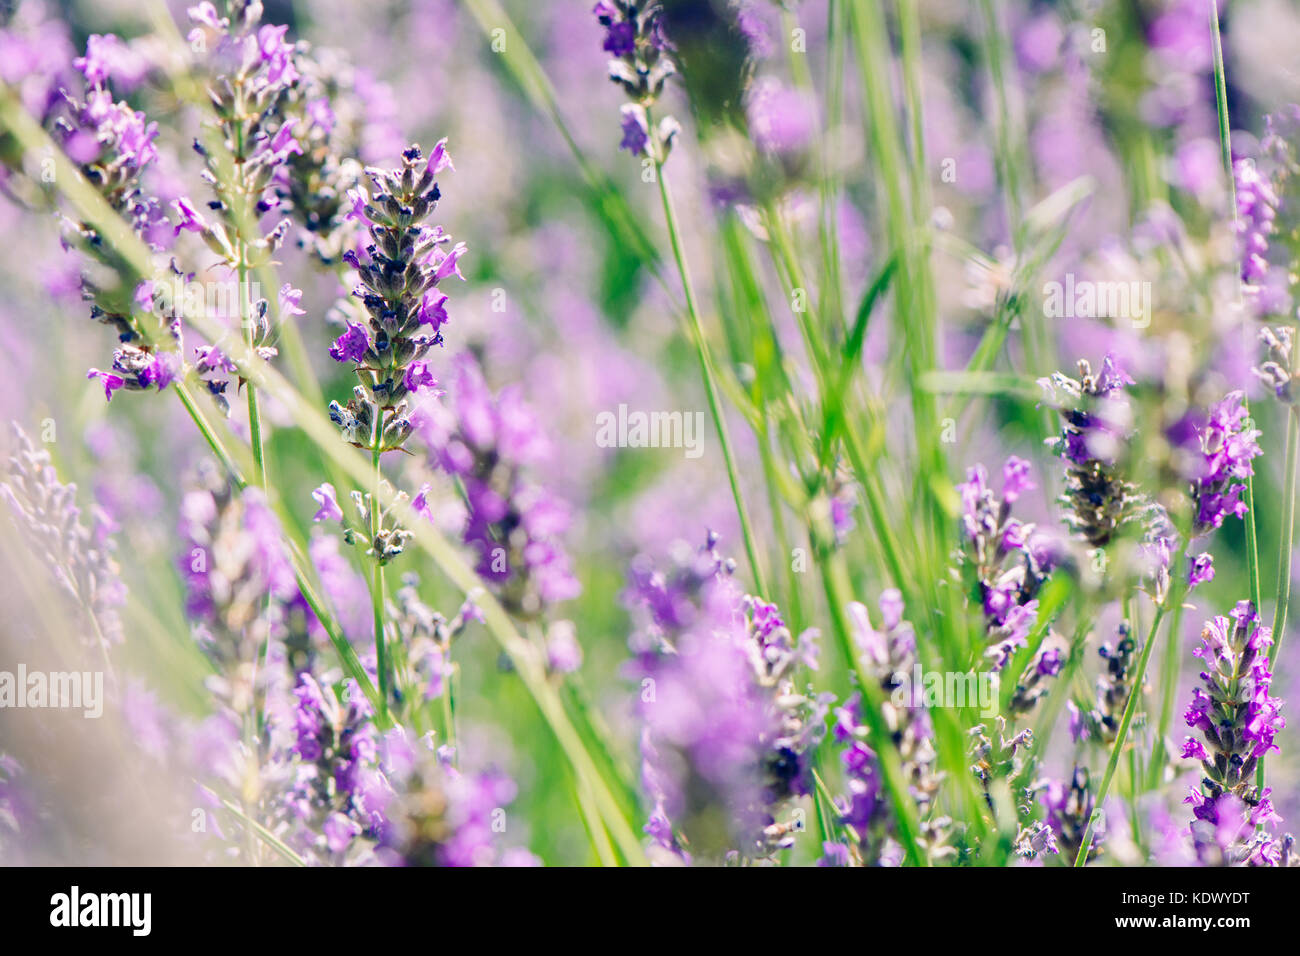 wild lavenders in the field, a sunny day, close up Stock Photo